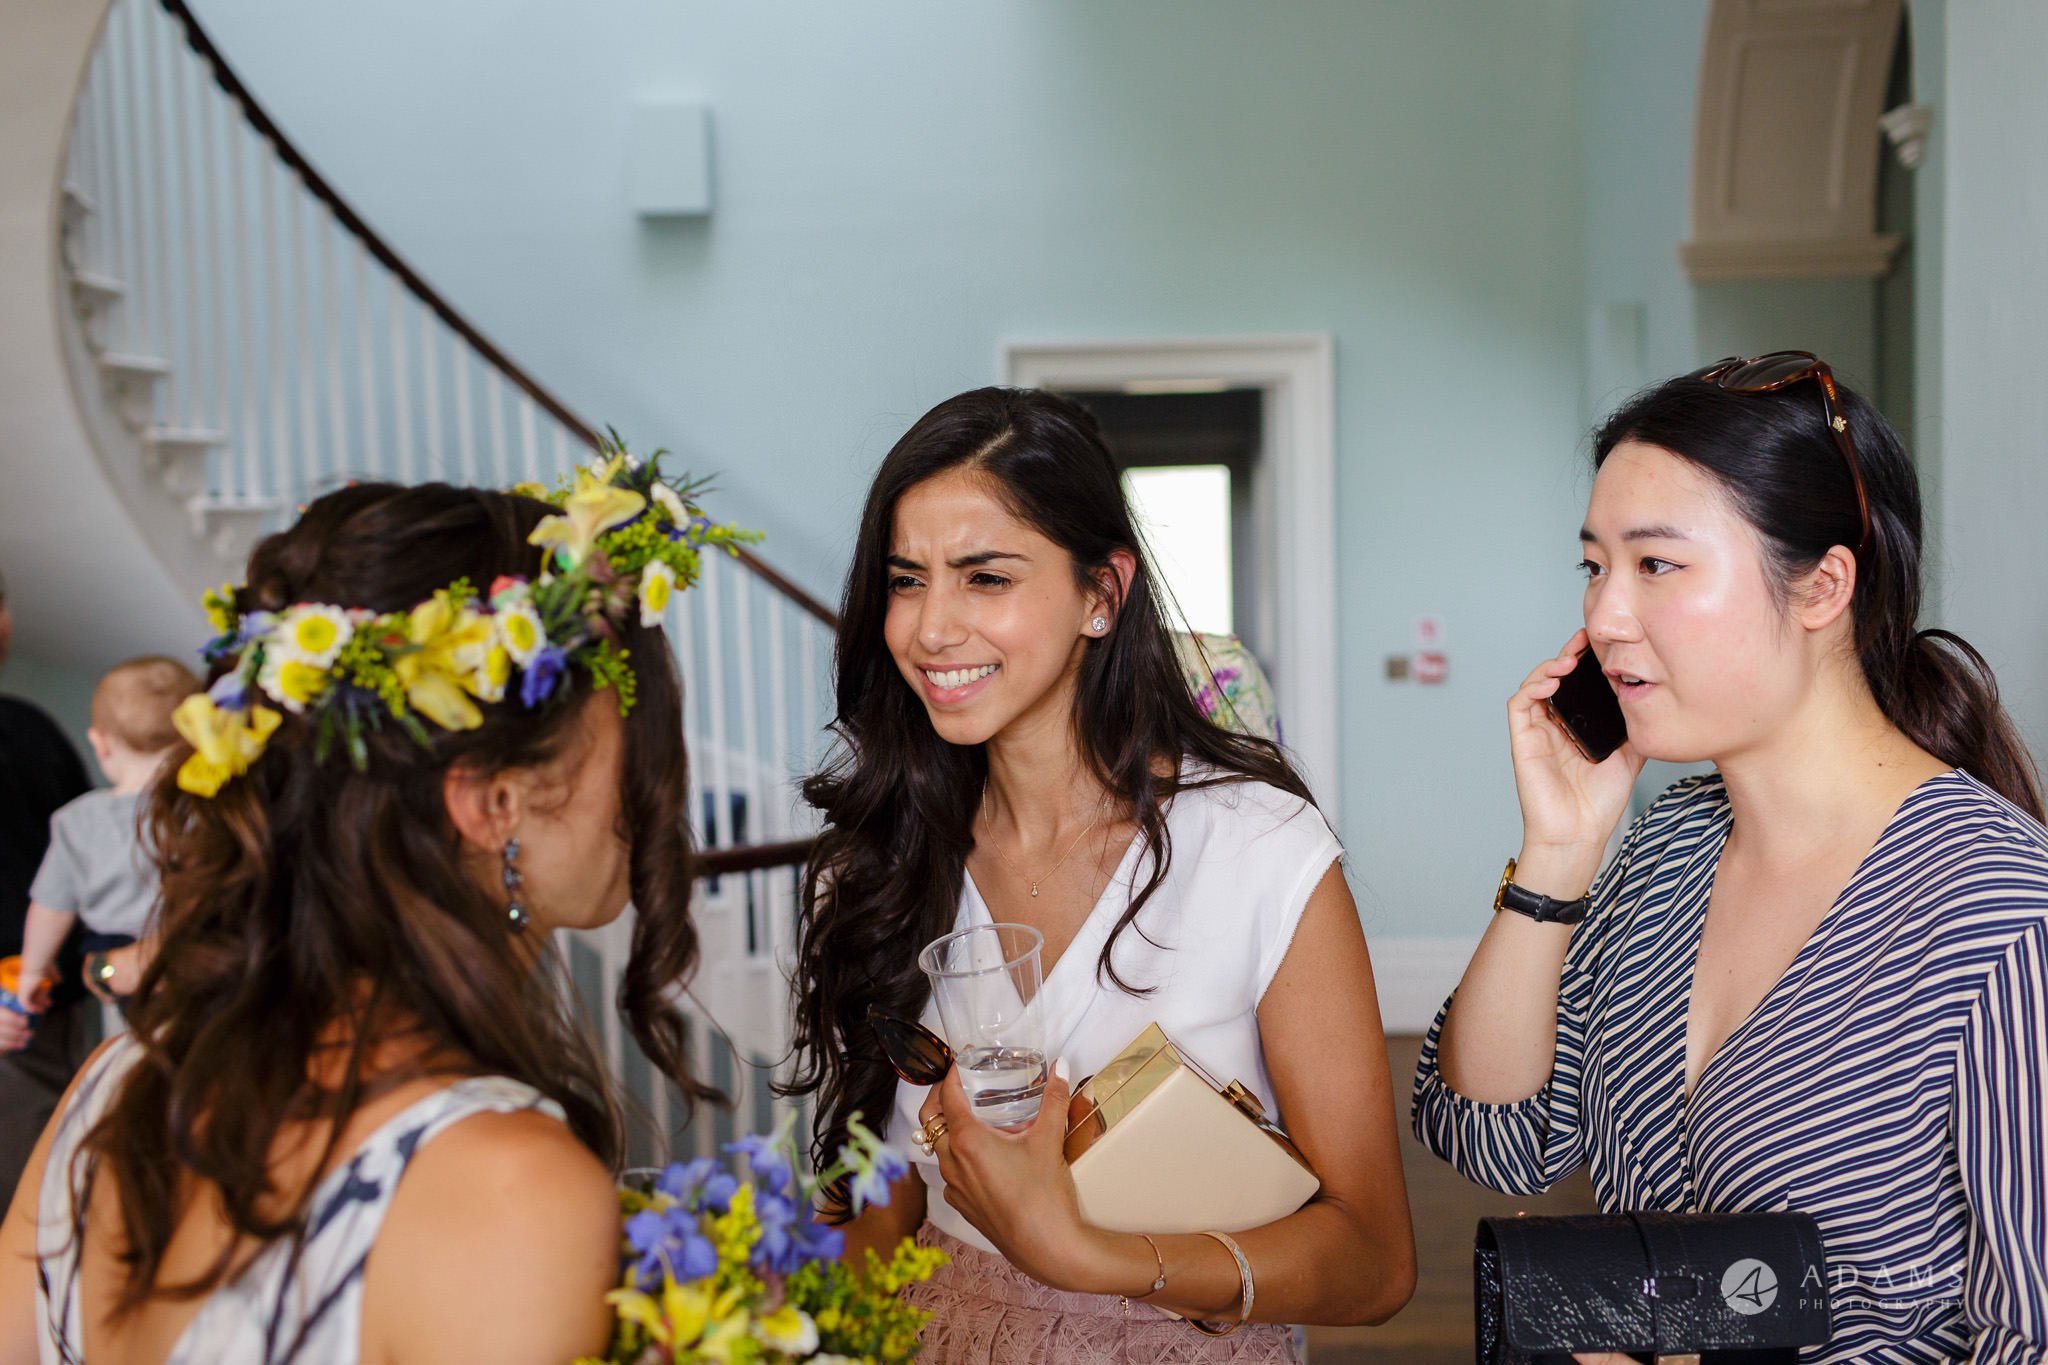 Clissold house wedding guests wishing the best